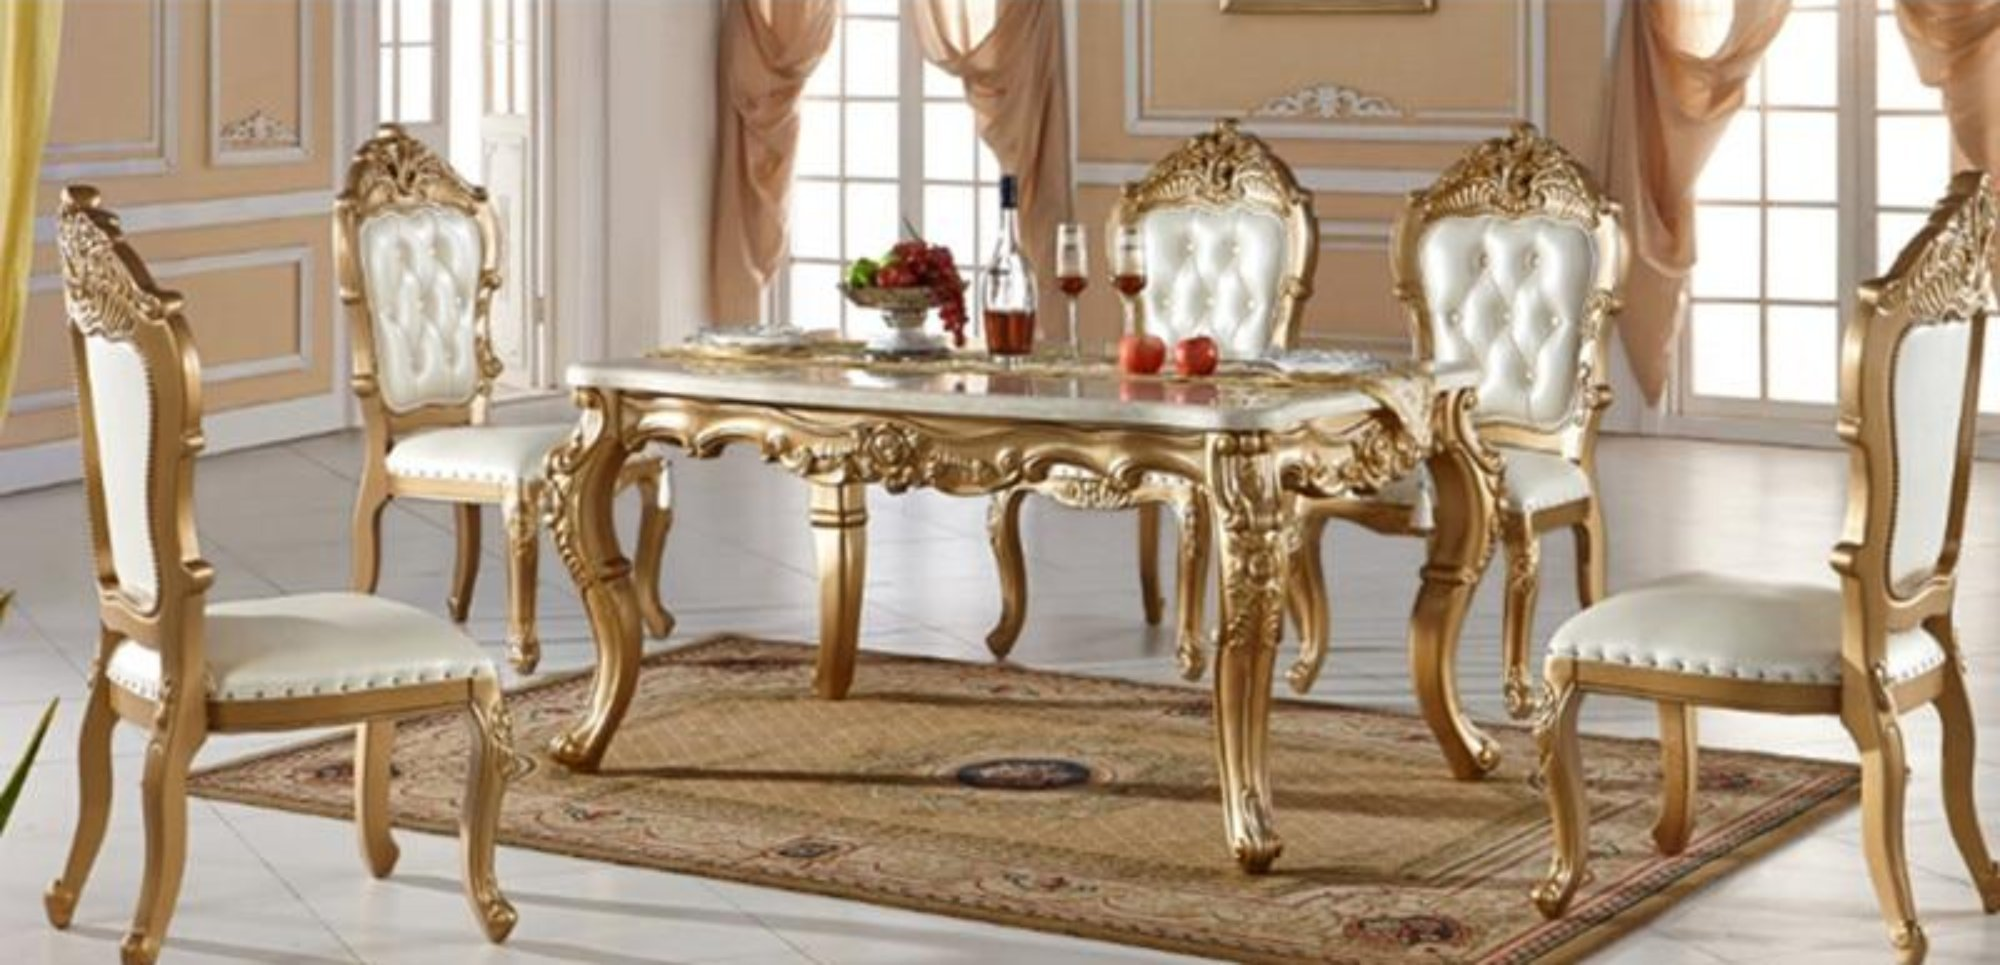 Classical Designed Royal Dining Table Dinning Table Design Dining Table Dinning Table Set